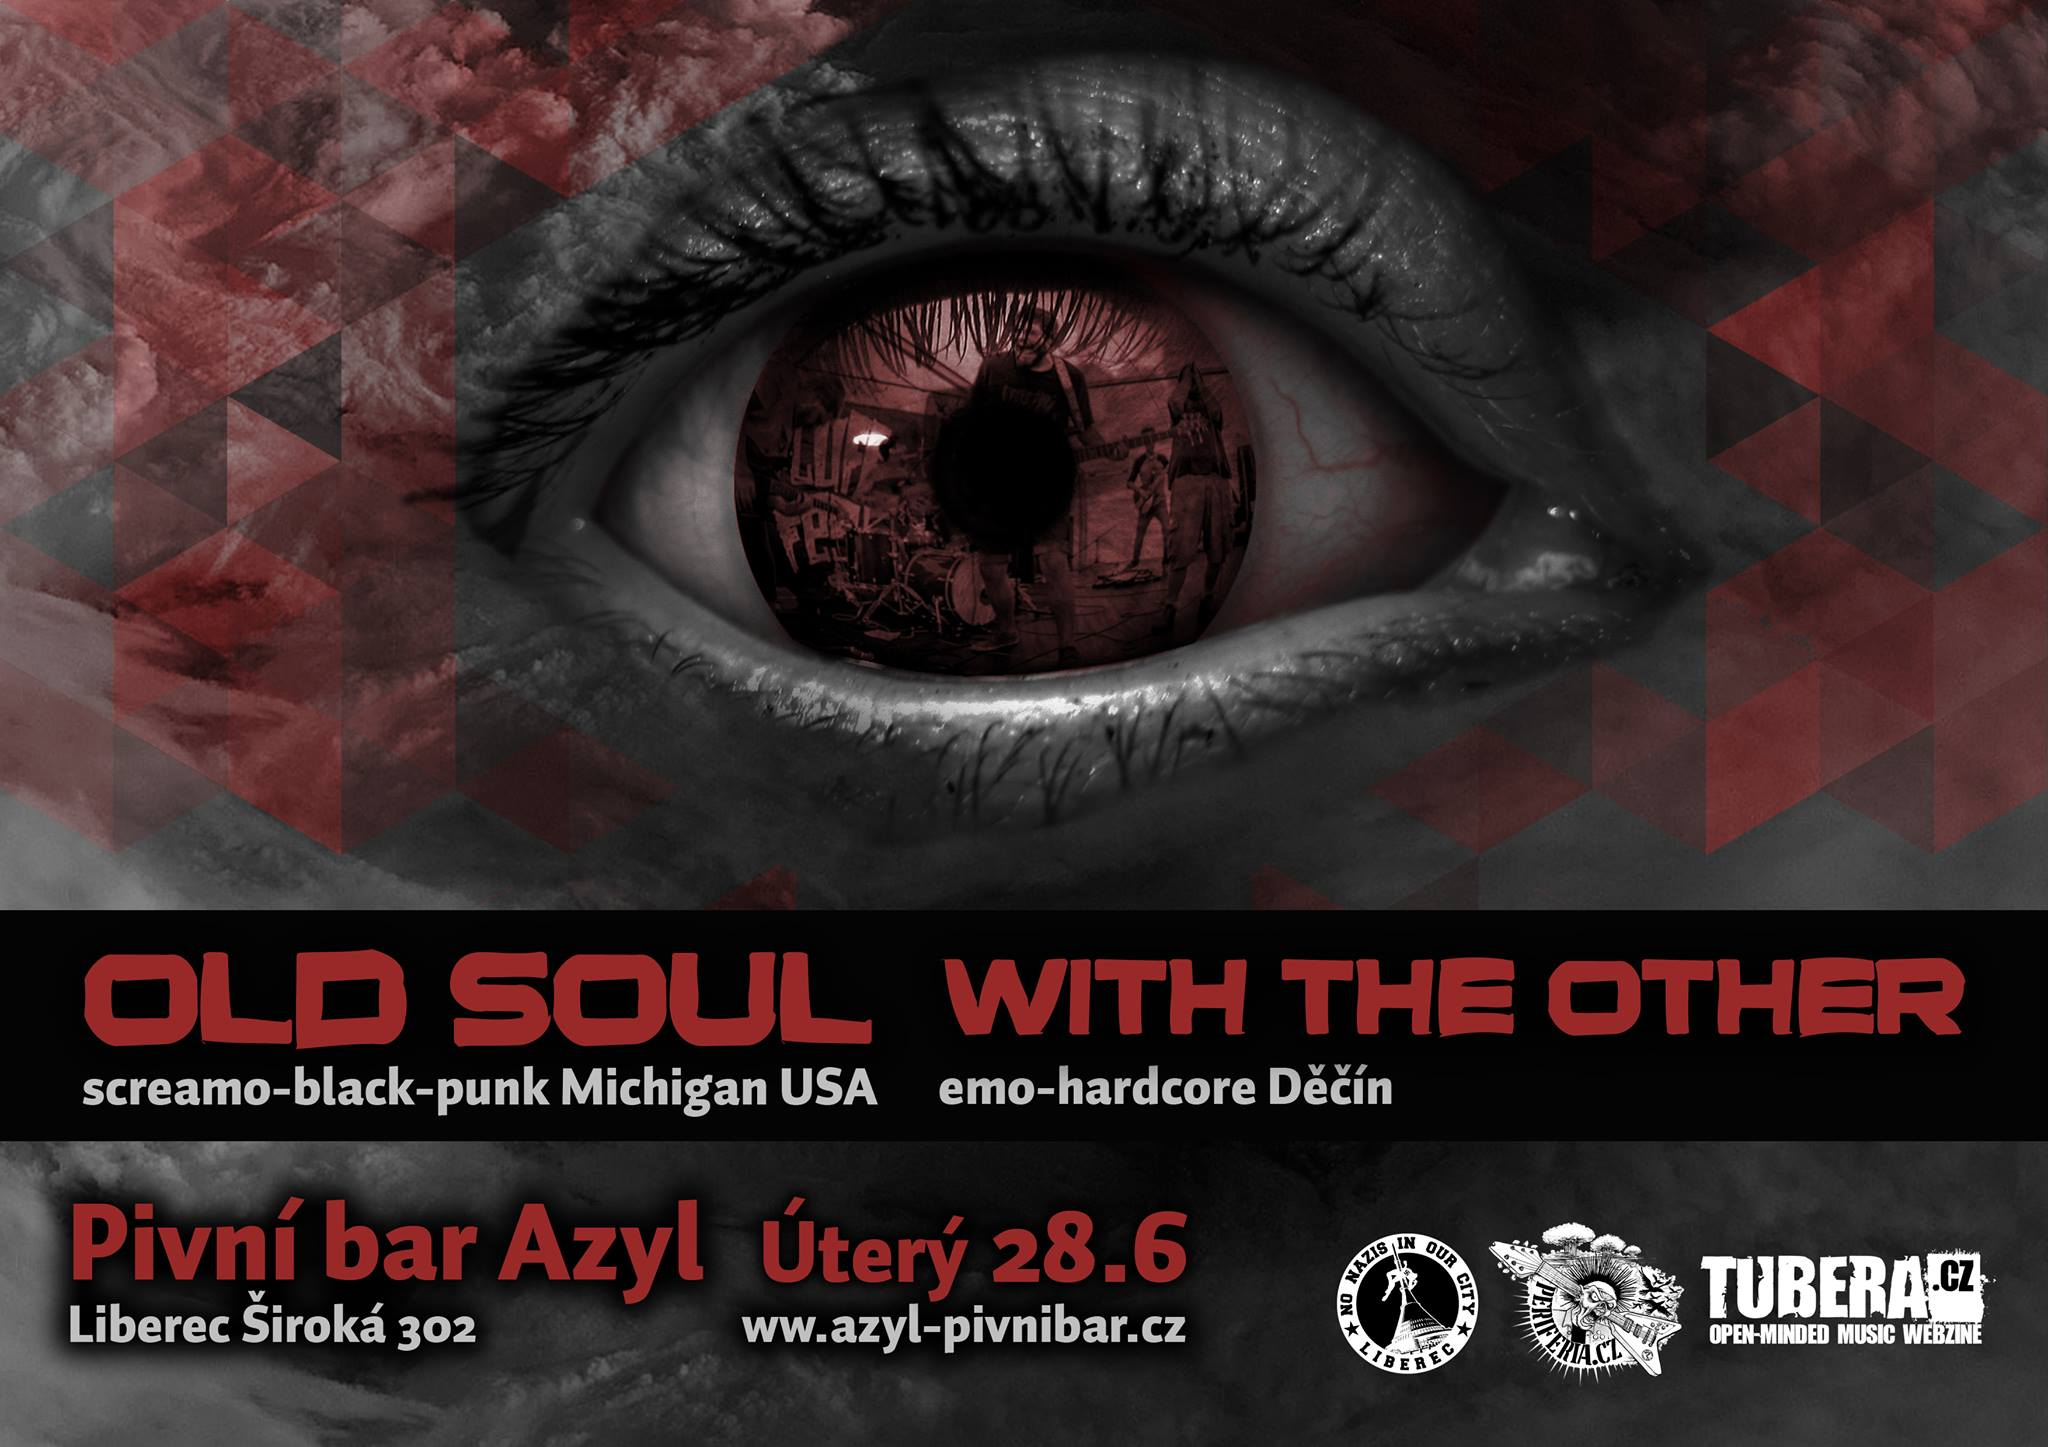 OLD SOUL (USA), With the other (Děčín) [Liberec]